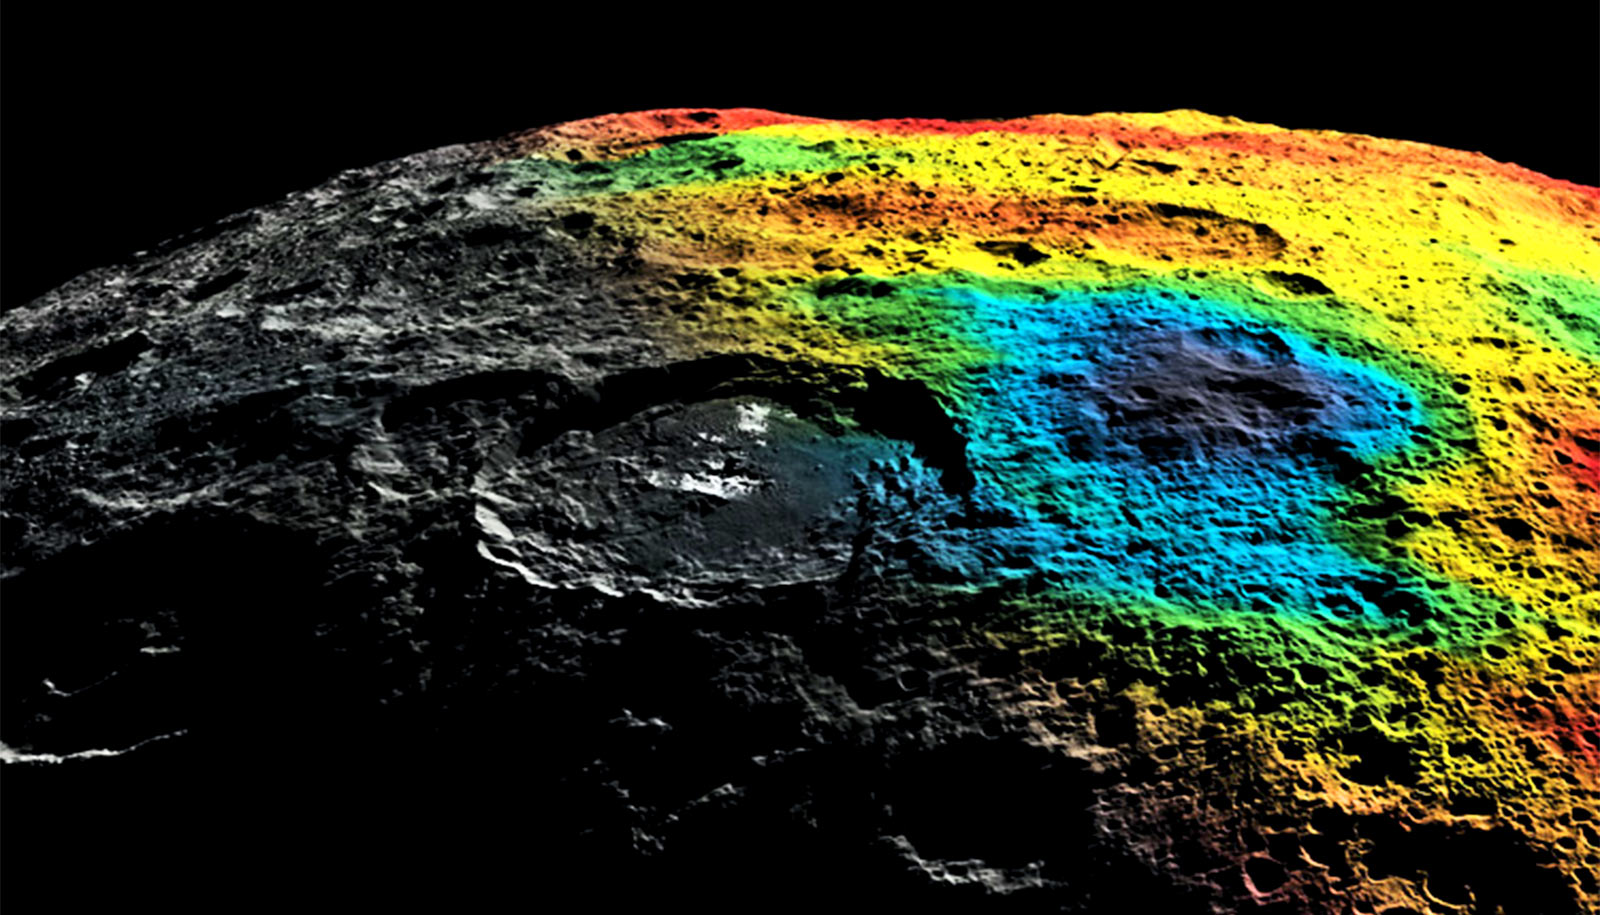 Dwarf planet Ceres may have salty water inside - Futurity